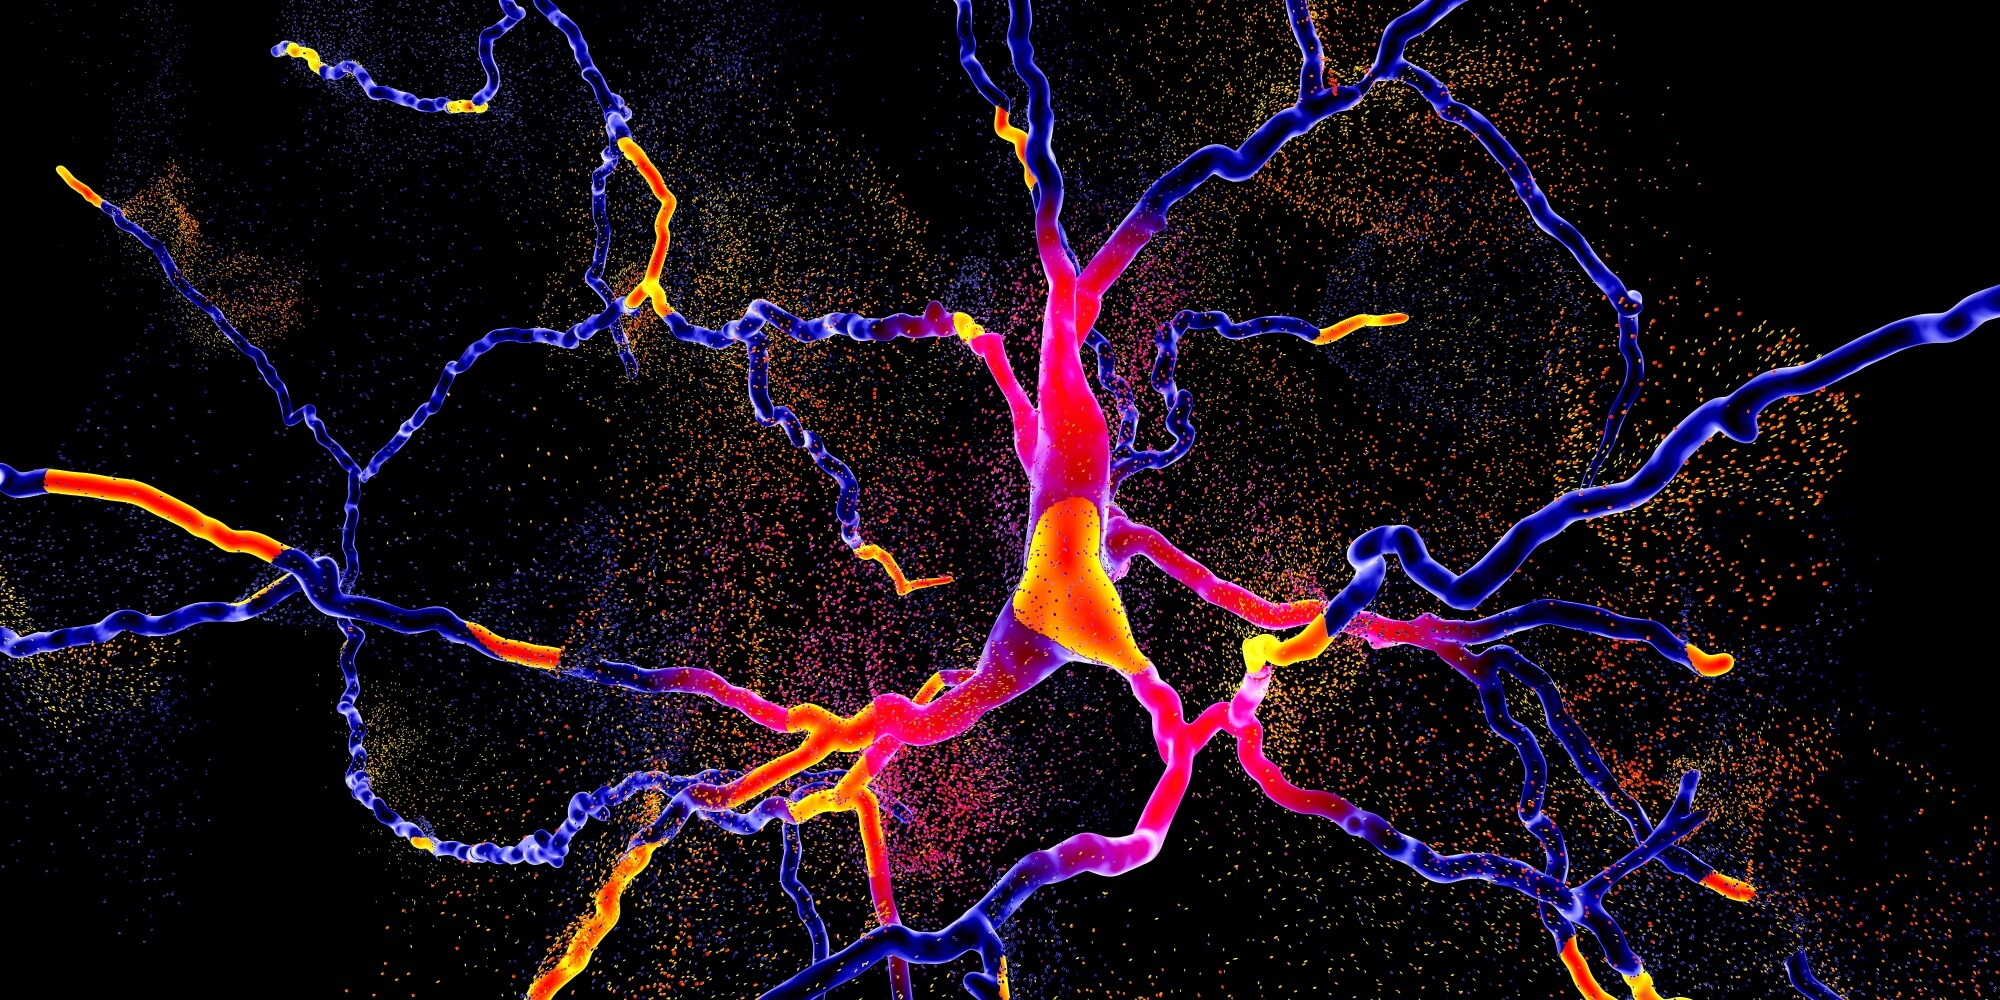 Image of a dopaminergic neuron